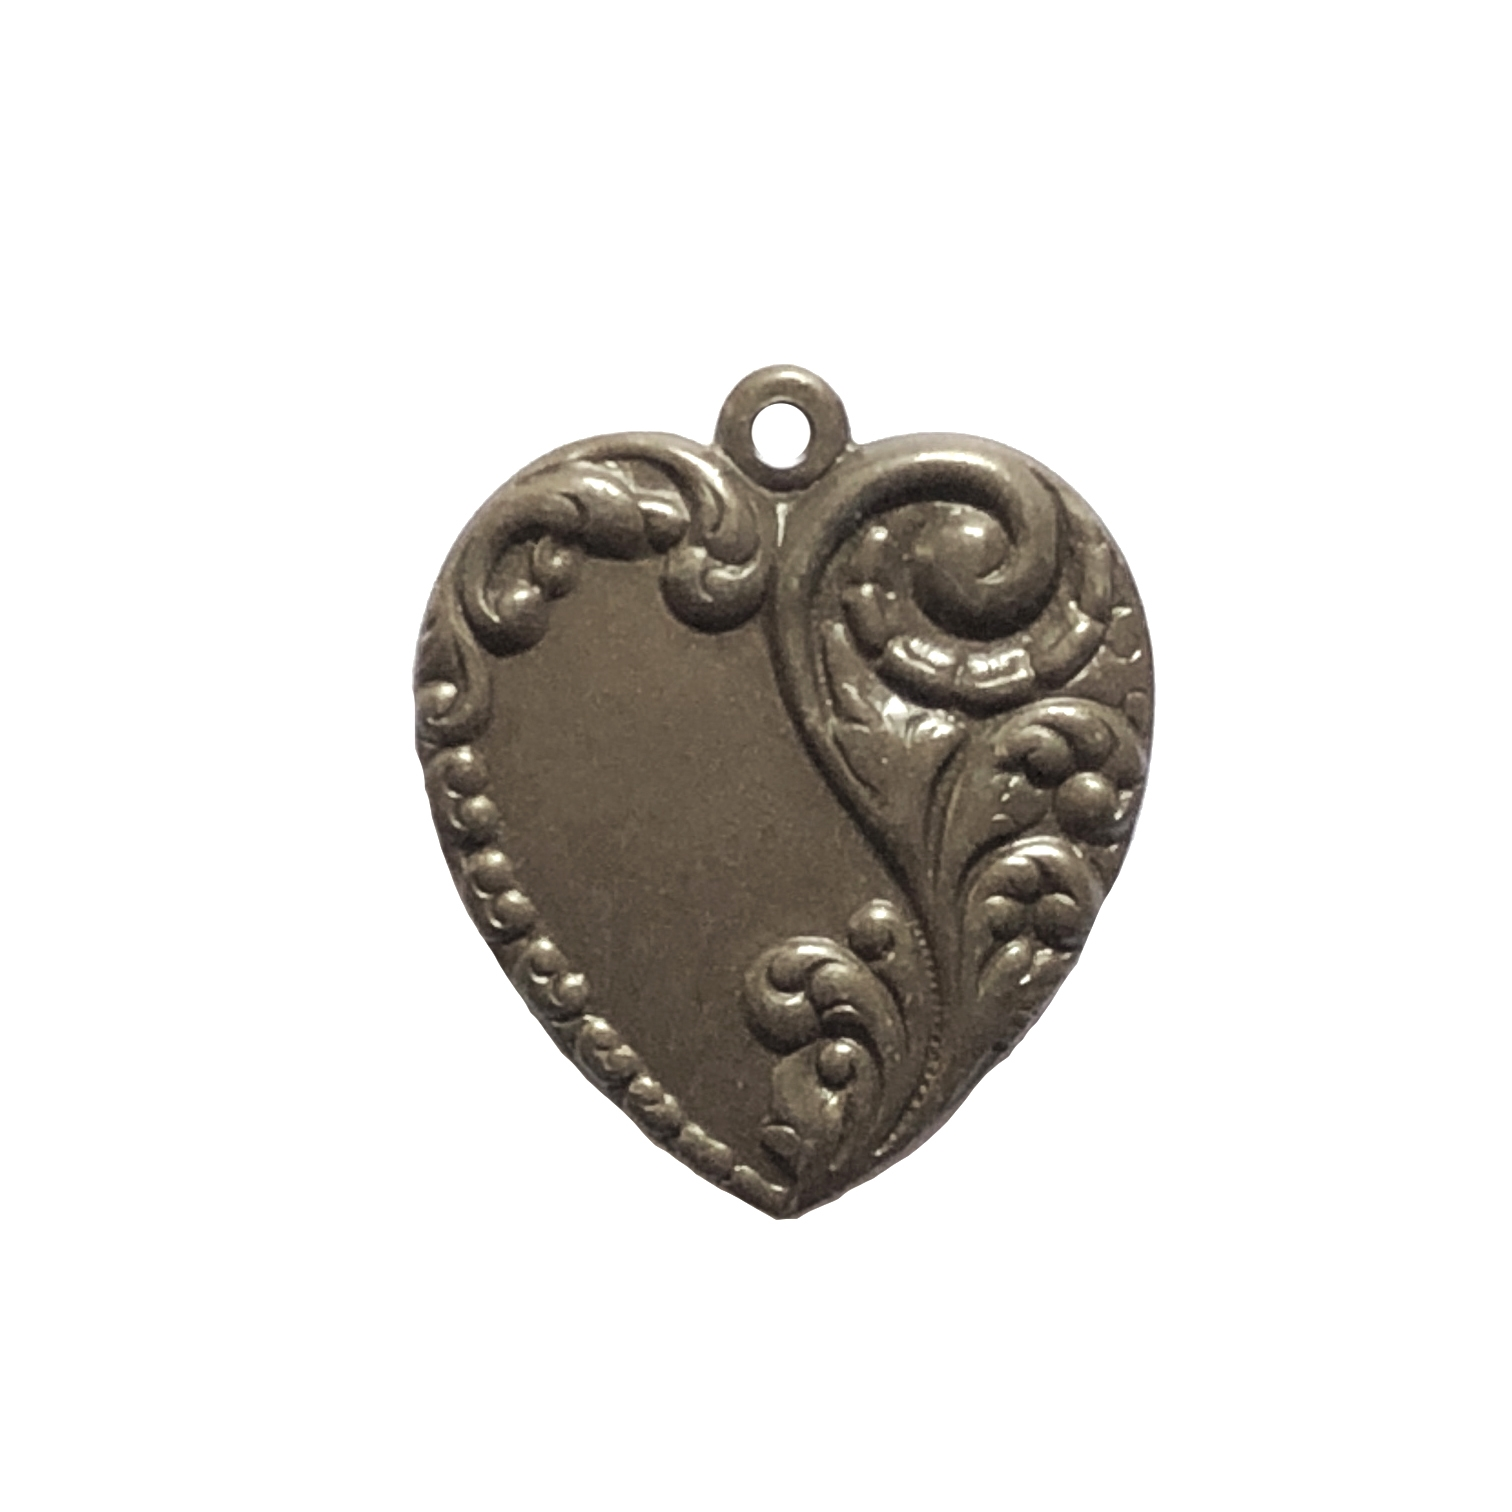 floral heart pendant, chocolate brass,  pendant, heart charm, heart, floral, floral heart, 28x24mm, victorian, choxie, us made, nickel free, B'sue Boutiques, jewelry making, jewelry supplies, jewelry findings, 09910